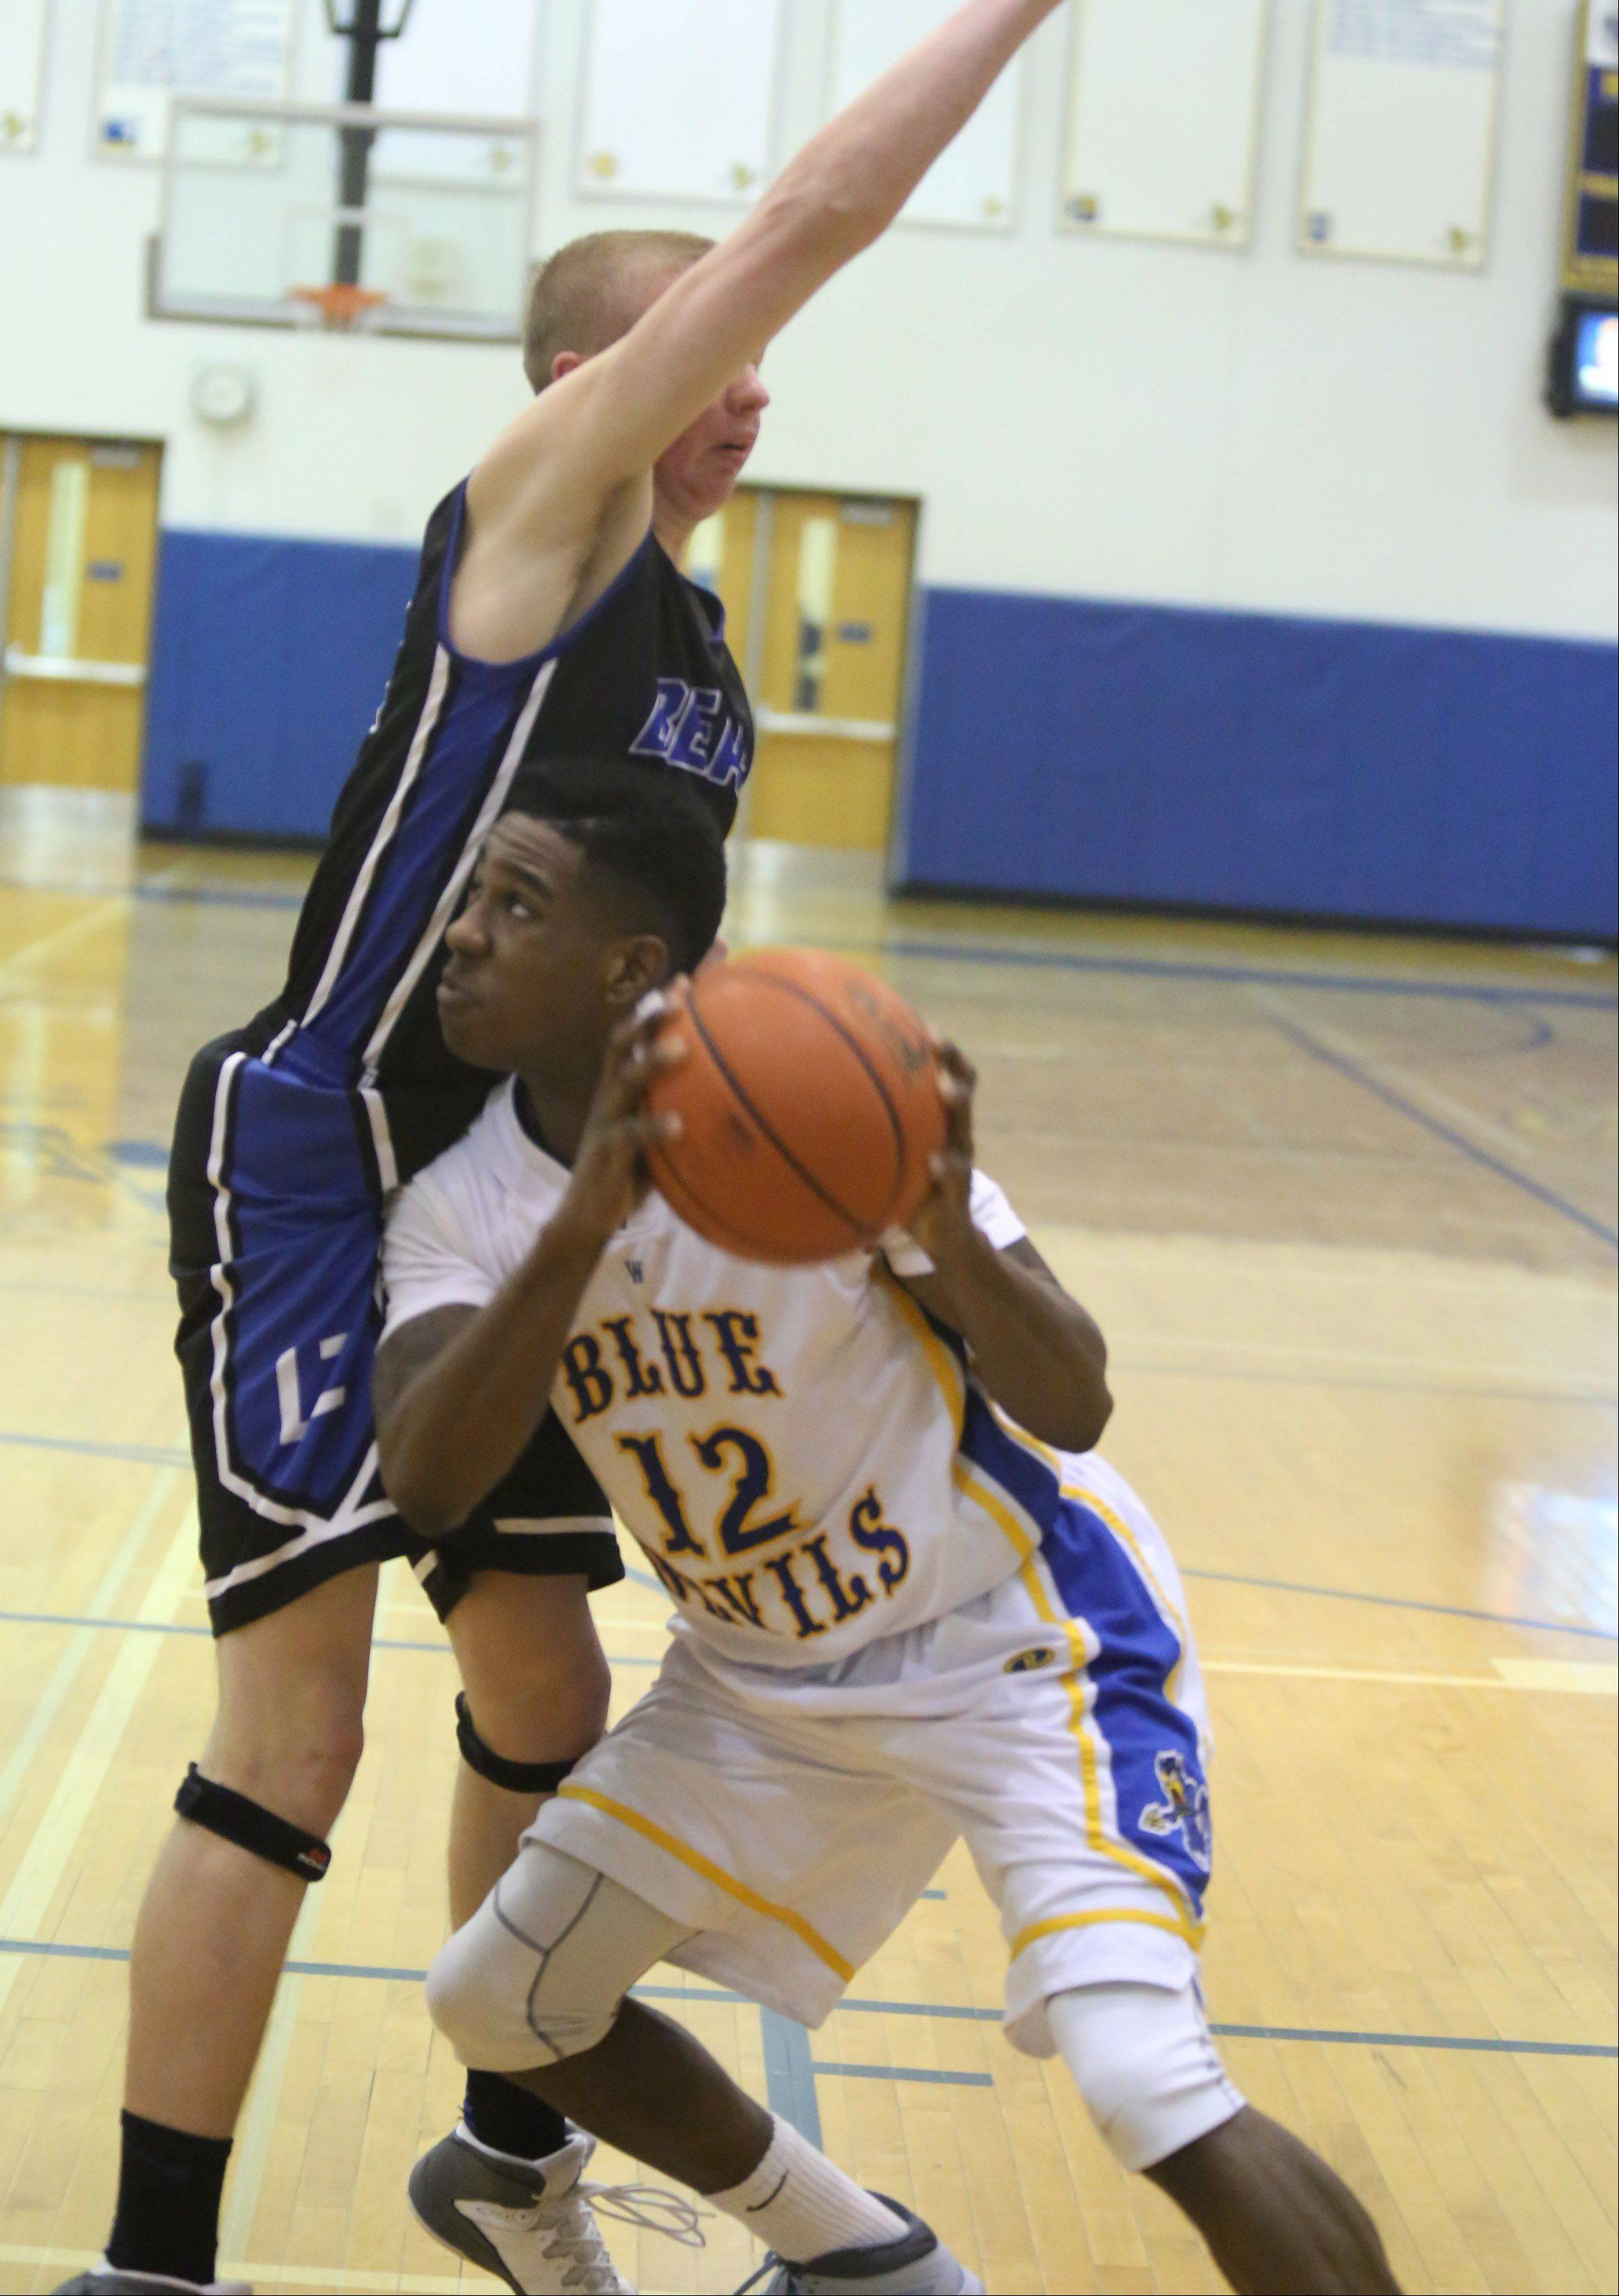 Warren forward Gregory Swane looks to put the ball up against Lake Zurich defender Brad Kruse at on Friday at Warren.